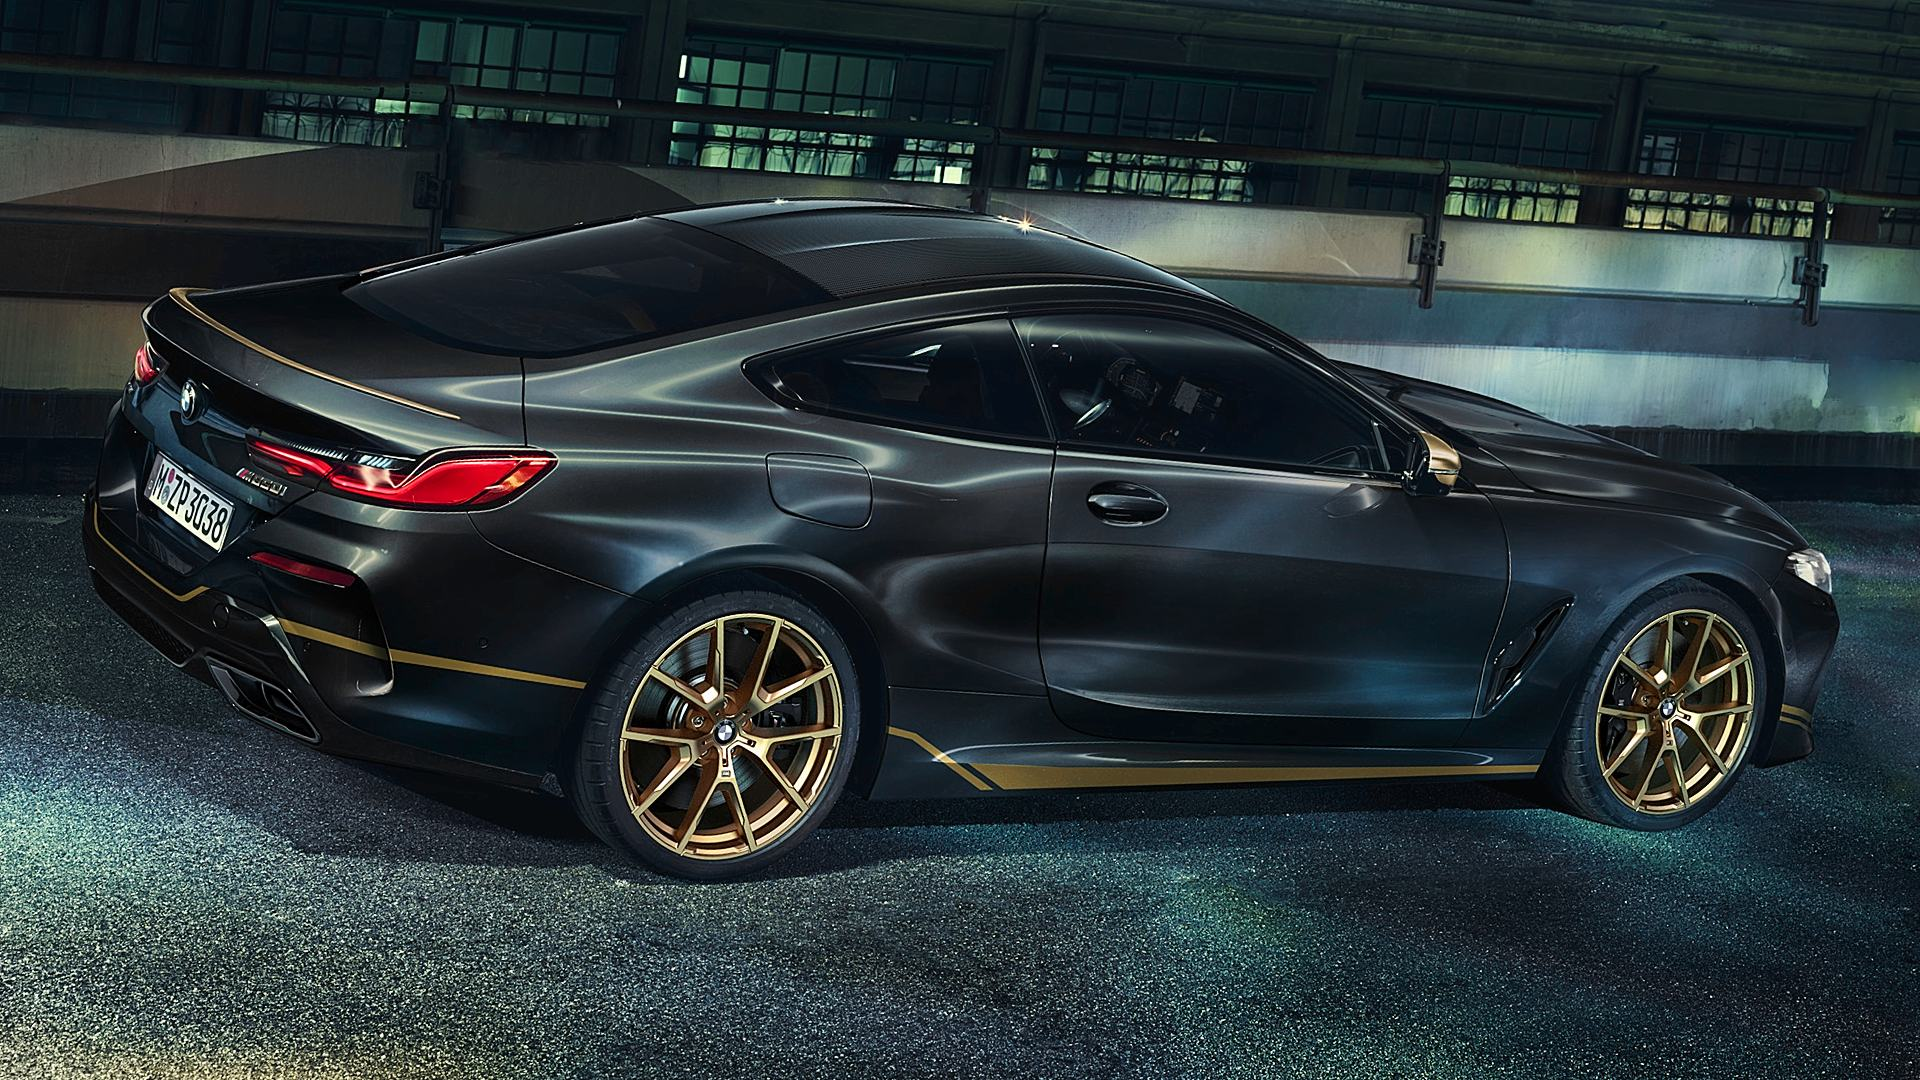 2020 BMW 8 Series Coupe Black Gold Images